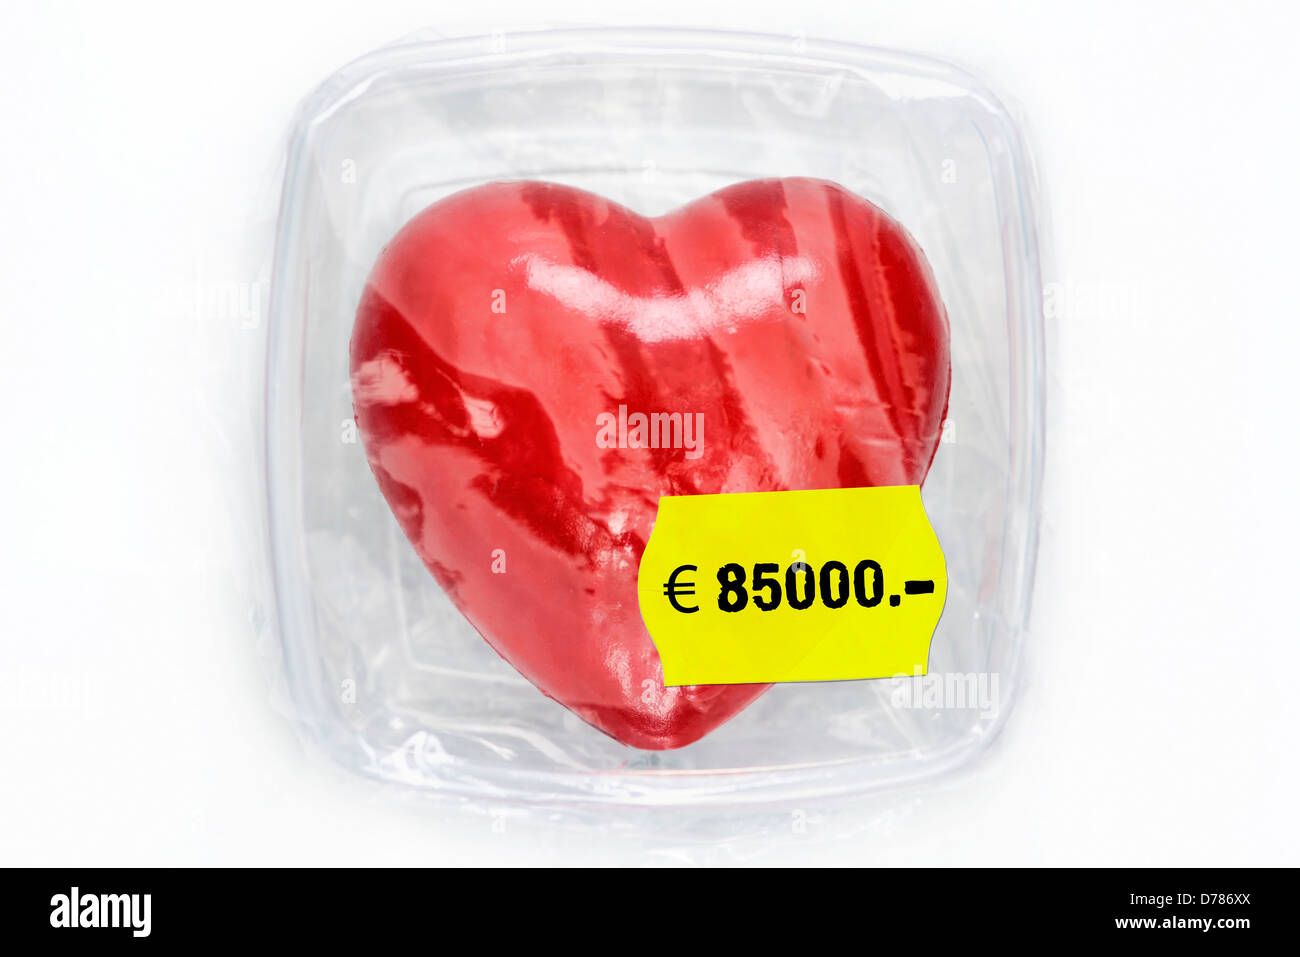 Heart in fresh hold box with prize label, symbolic photo organ donation - Stock Image